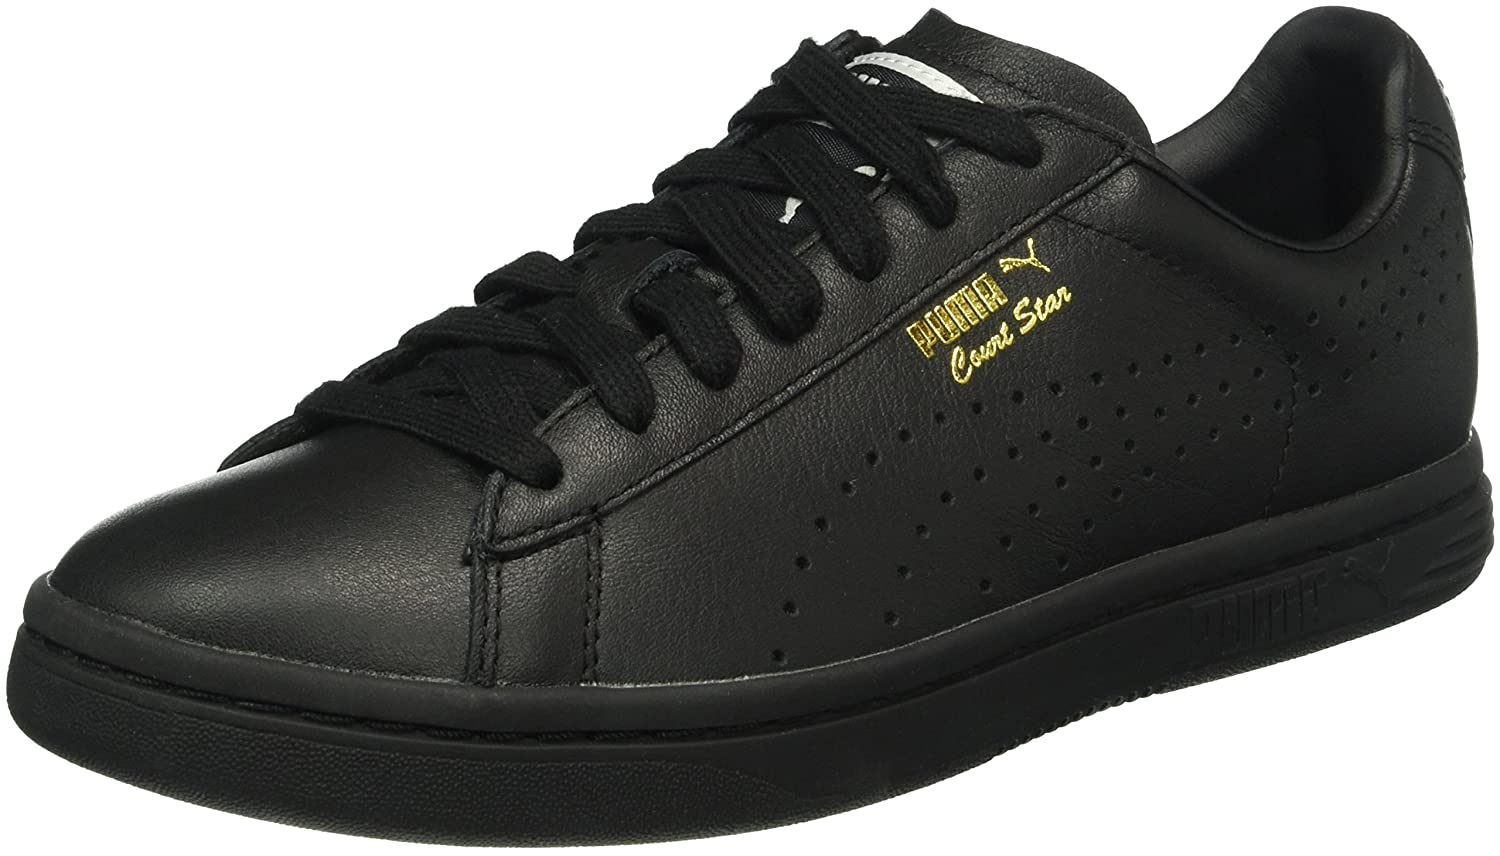 TALLA 40 EU. Puma Court Star NM, Zapatillas Unisex Adulto